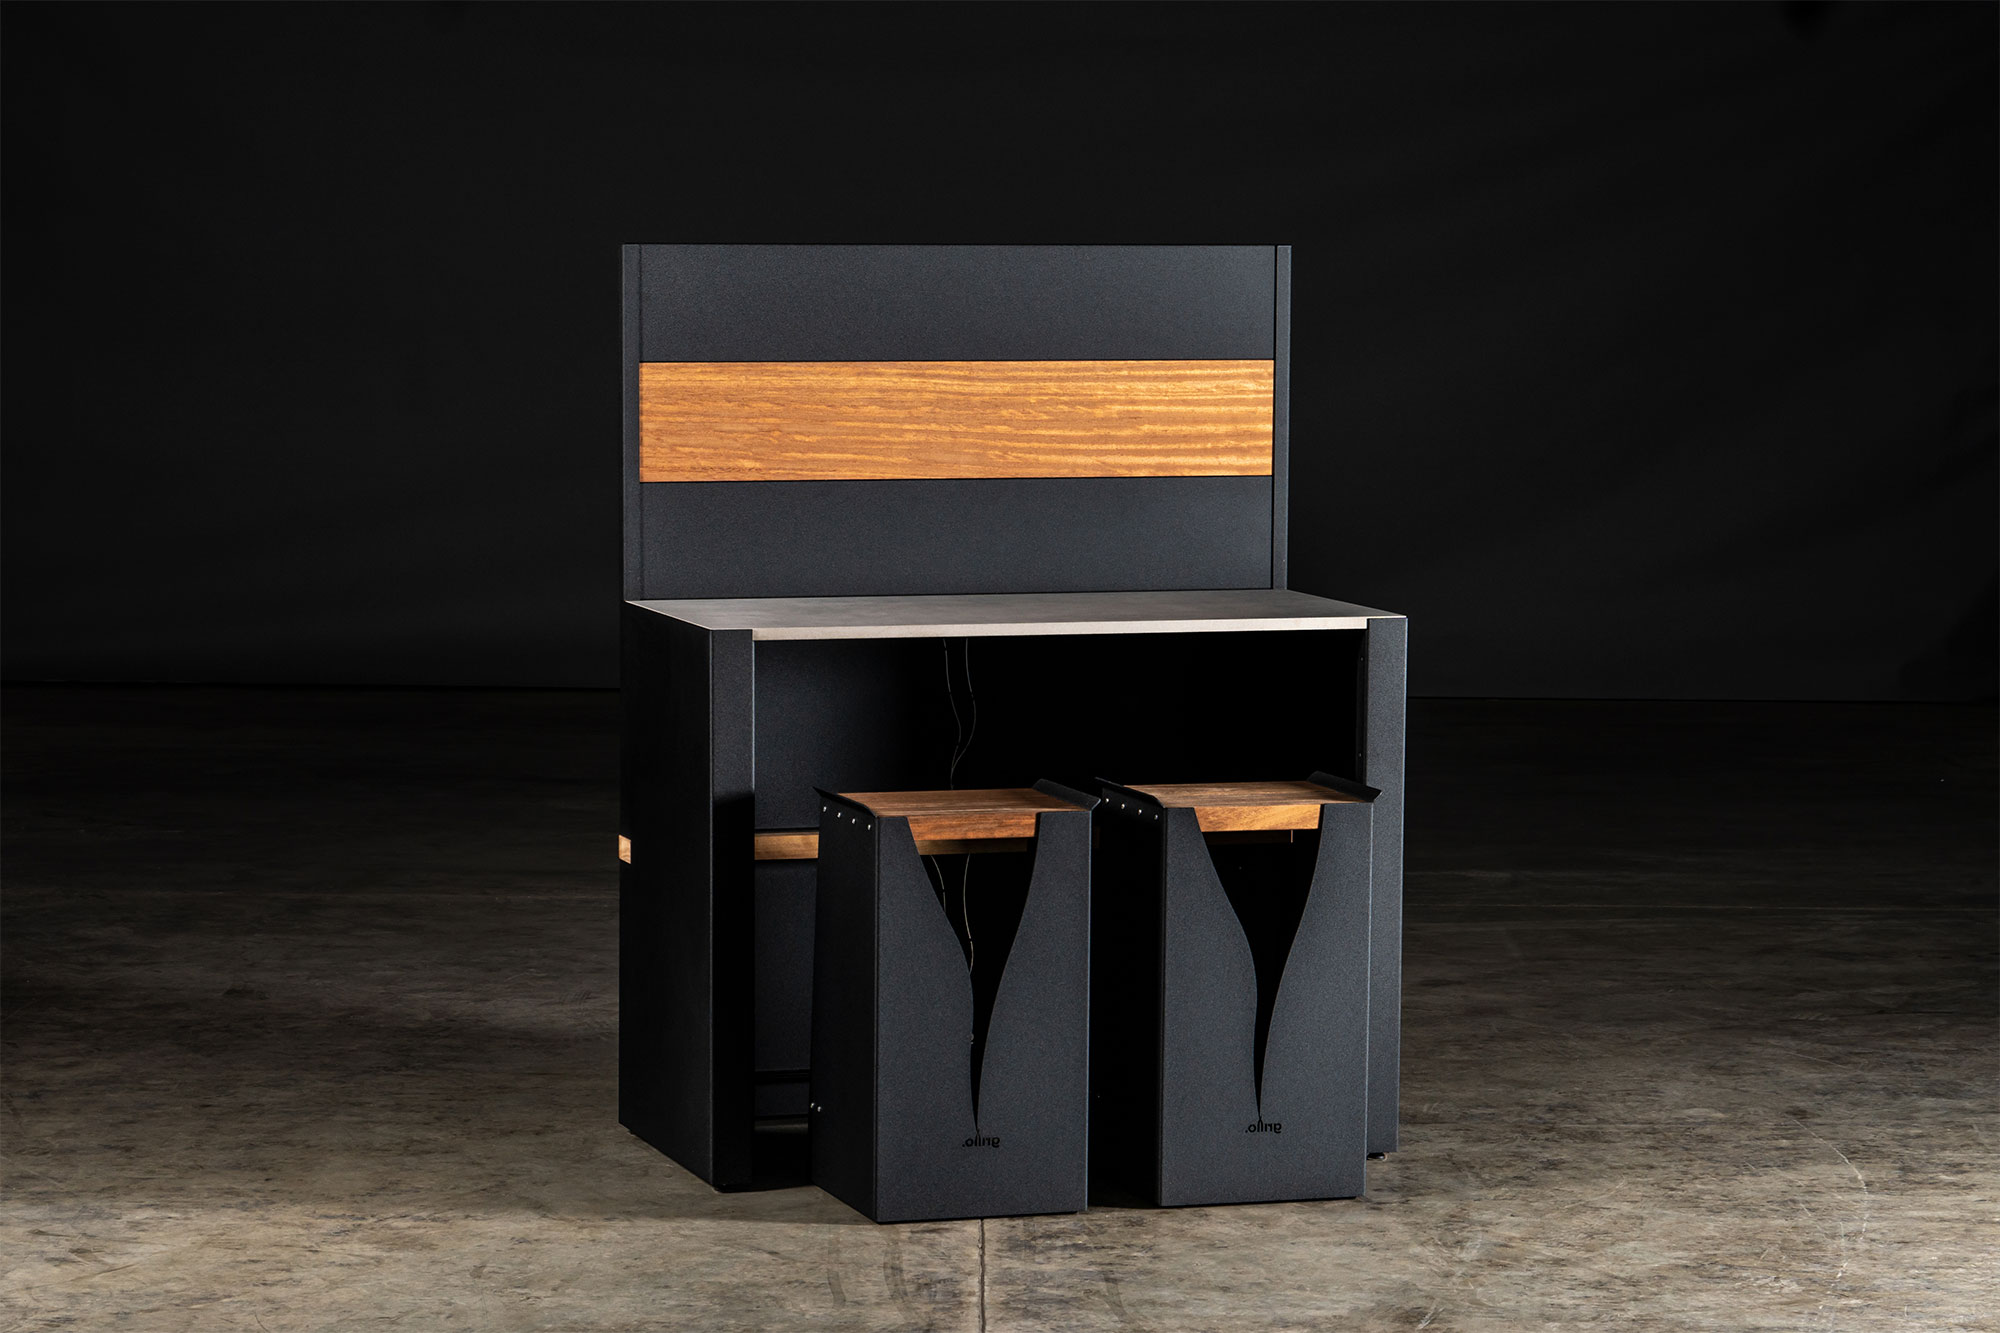 black carbon steel vantage Kitchen Bar and black Signature Rear Fascia with black Carbon Steel Feature Wall and Iroko wood Inlay with two black bar stools